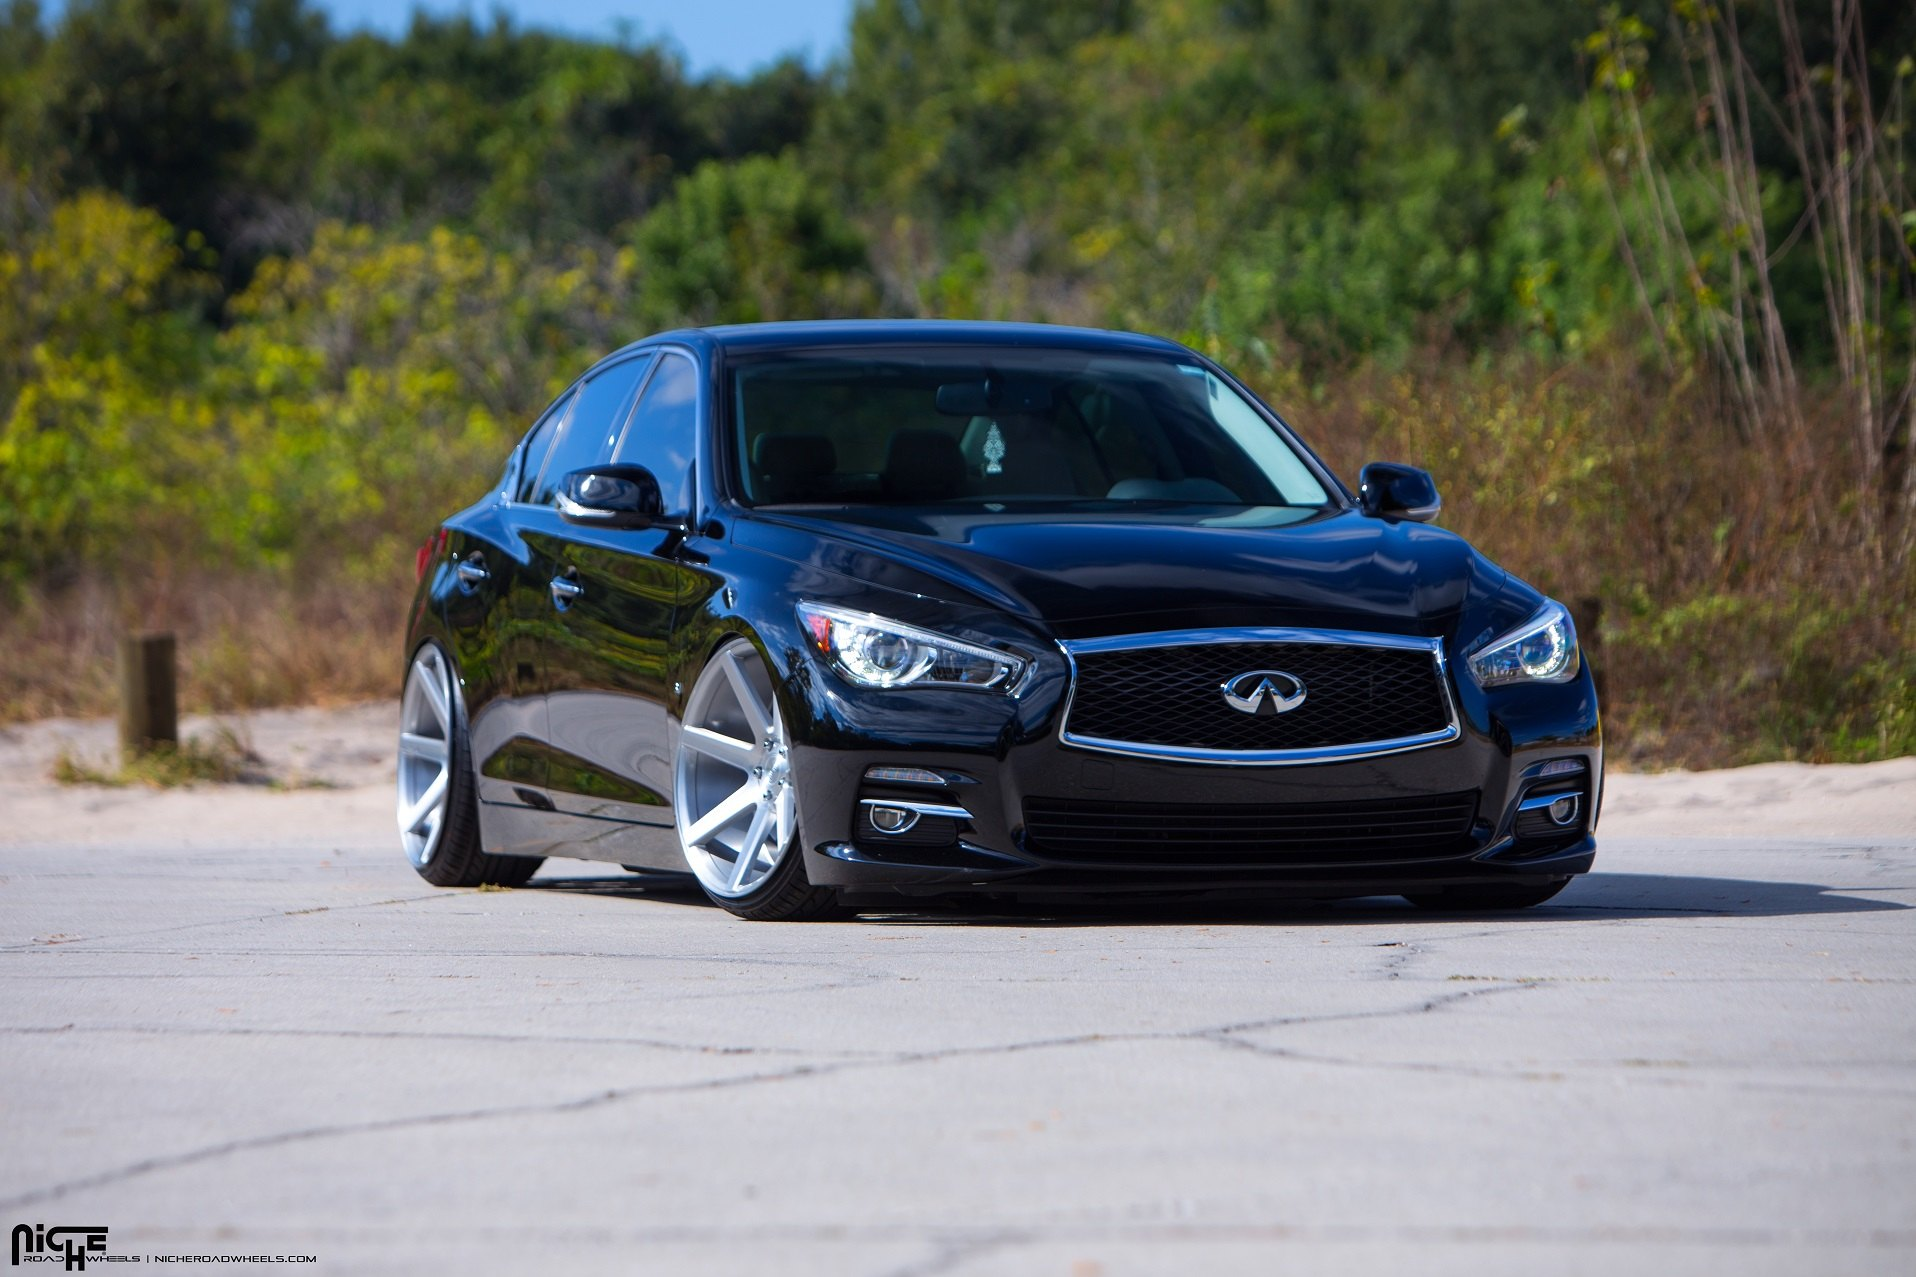 Stanced Infiniti Q50 Enhanced With Air Suspension And Niche Rims